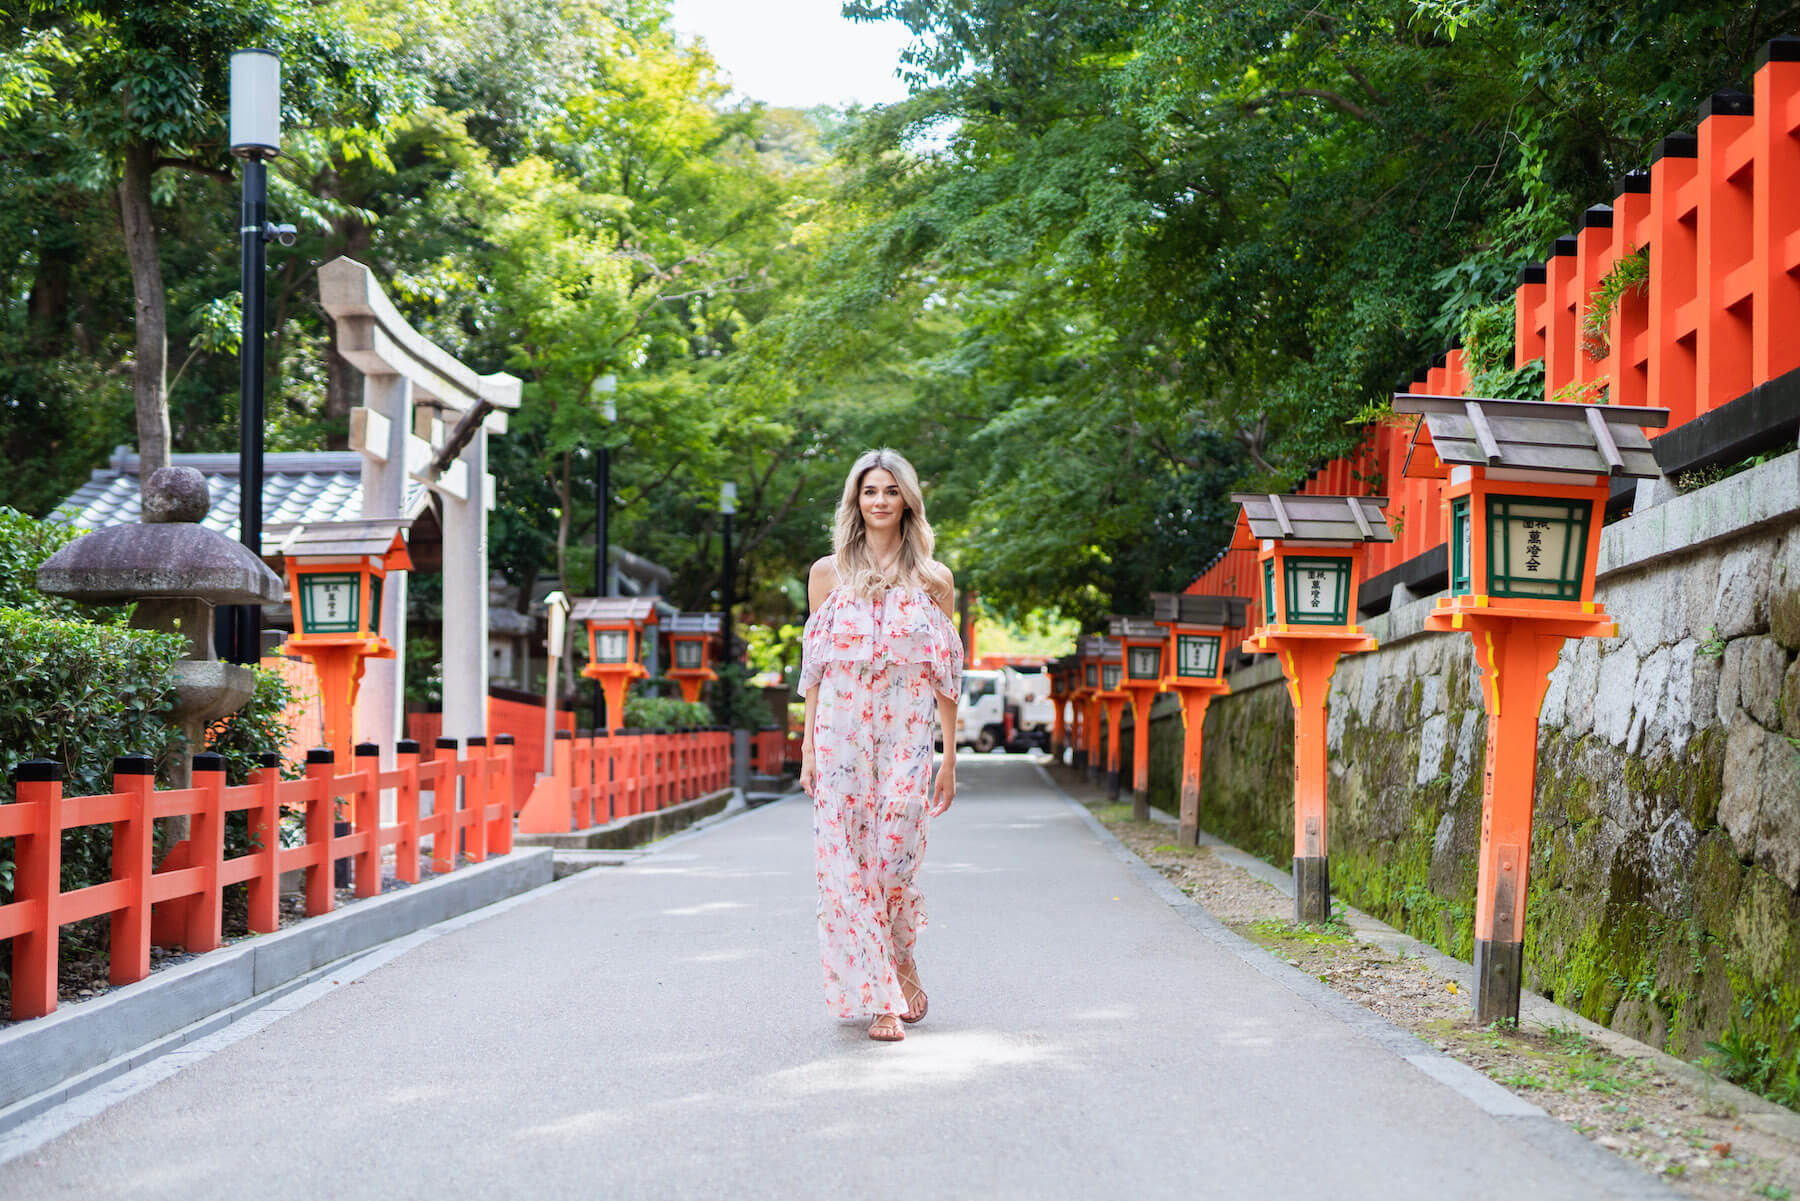 Solo traveler in Kyoto Japan